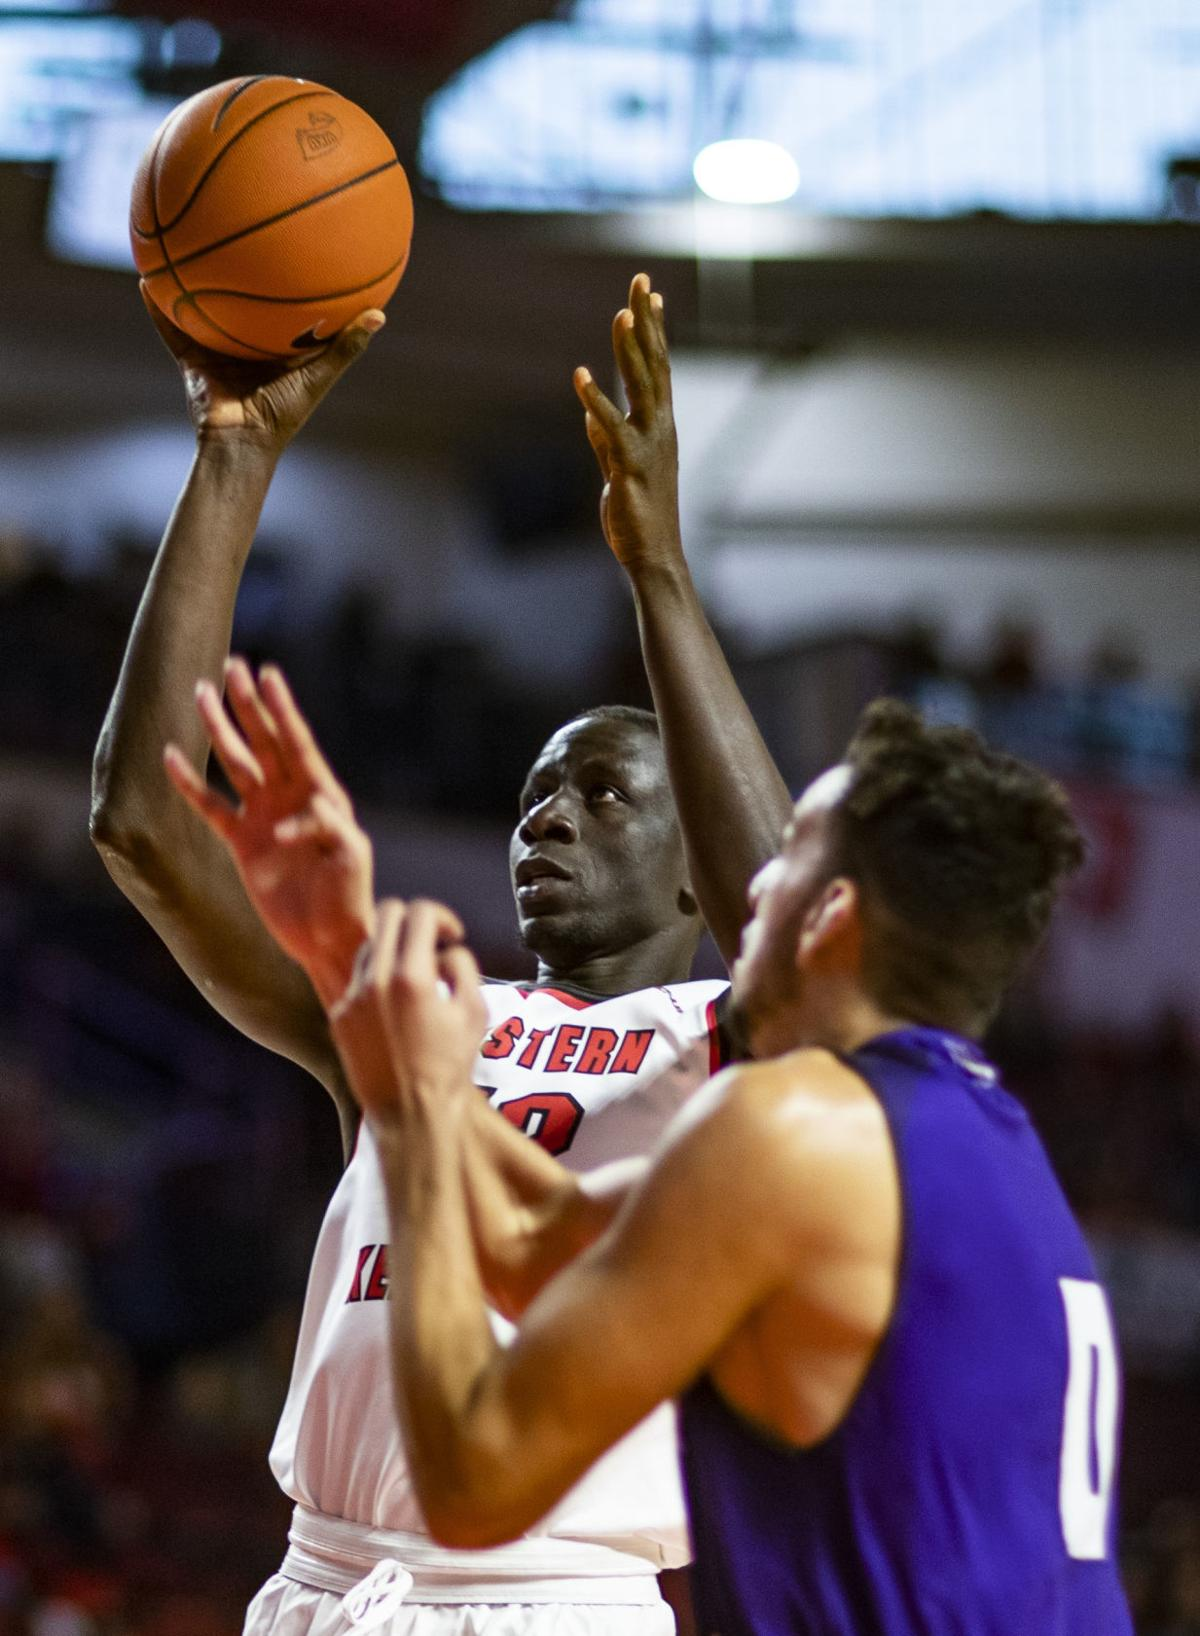 WKU defeats Kentucky Wesleyan 96-71 in exhibition